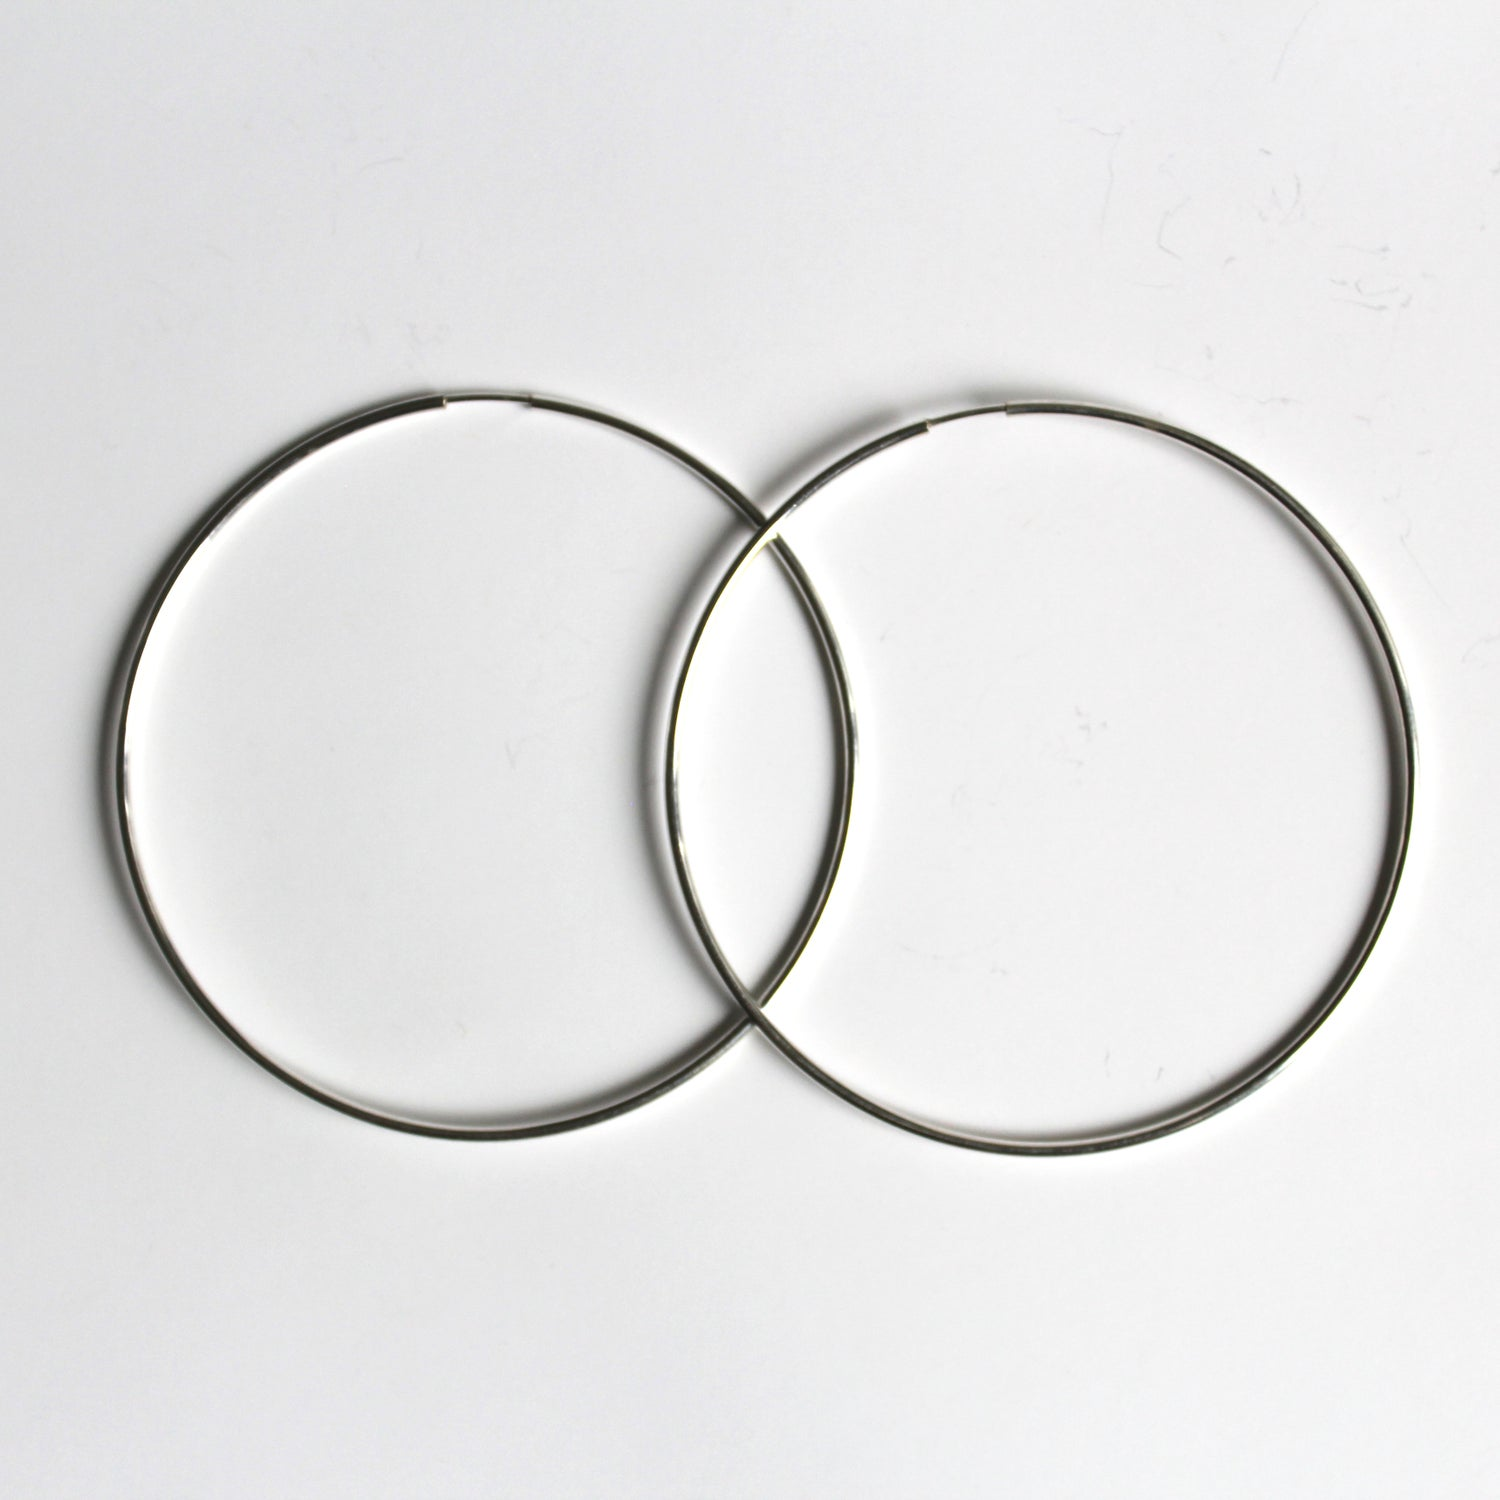 Image of Large Sterling Silver Endless Hoop Earrings